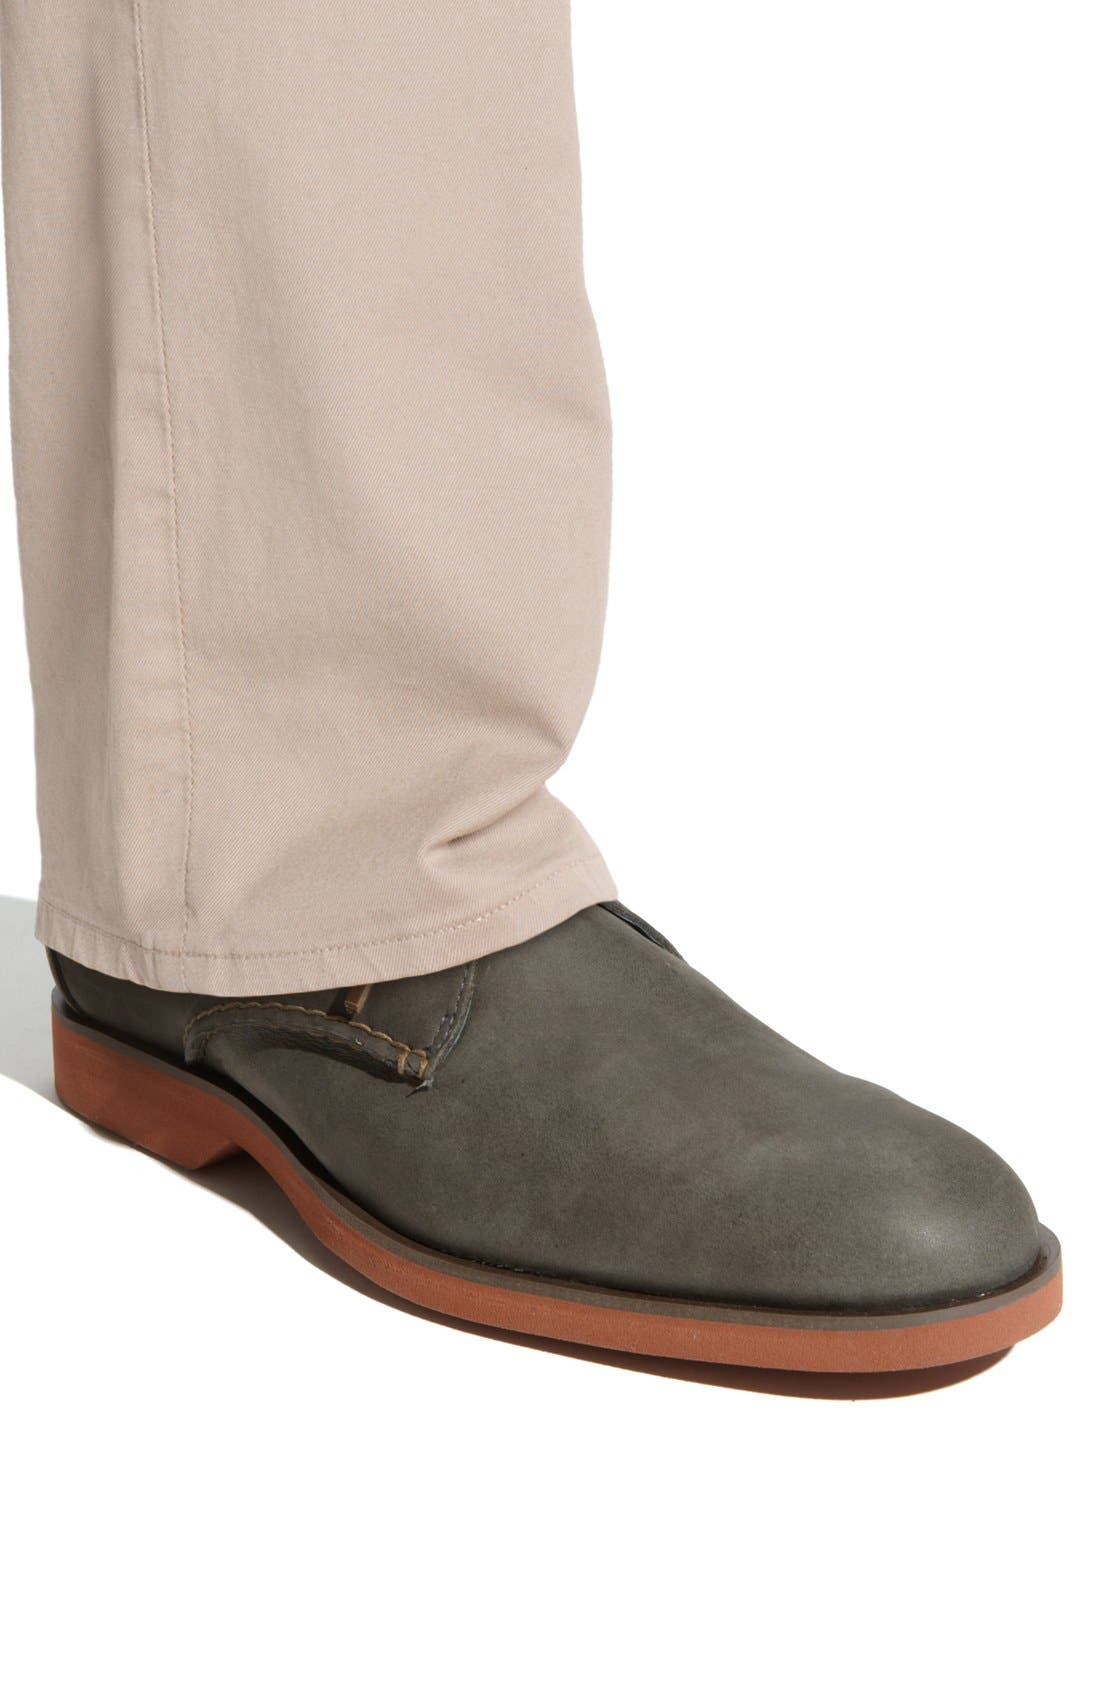 Top-Sider<sup>®</sup> 'Boat Ox' Chukka Boot,                             Alternate thumbnail 6, color,                             020